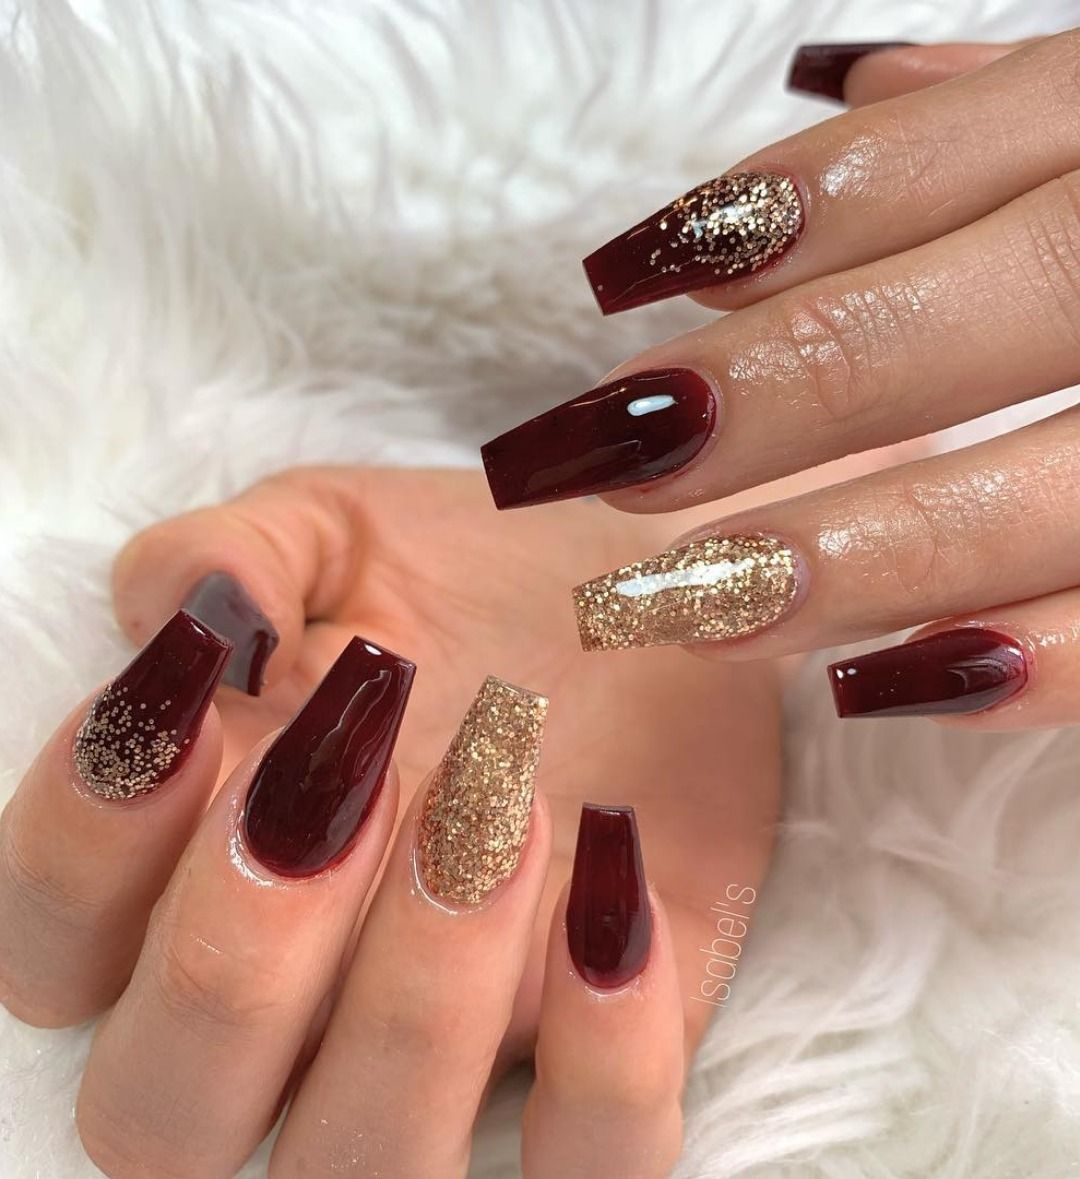 The Best Nail Trends For Cute Fall Manicure Stylish Belles Gold Acrylic Nails Burgundy Nails Burgundy Nail Designs